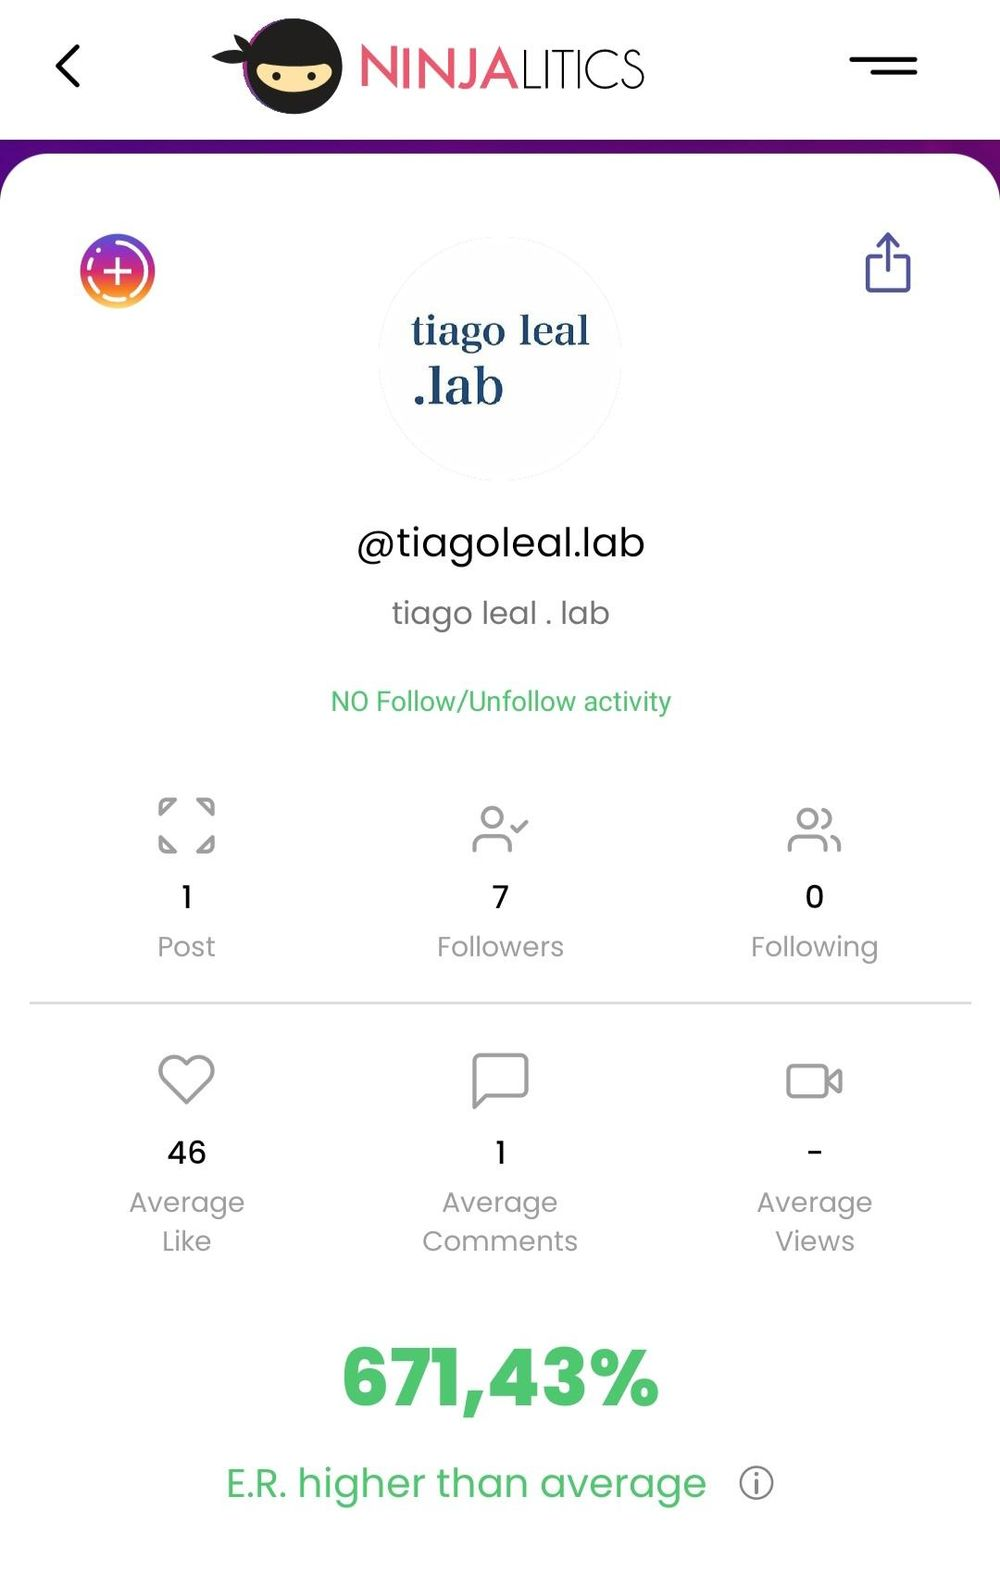 tiagoleal.lab - image 1 - student project